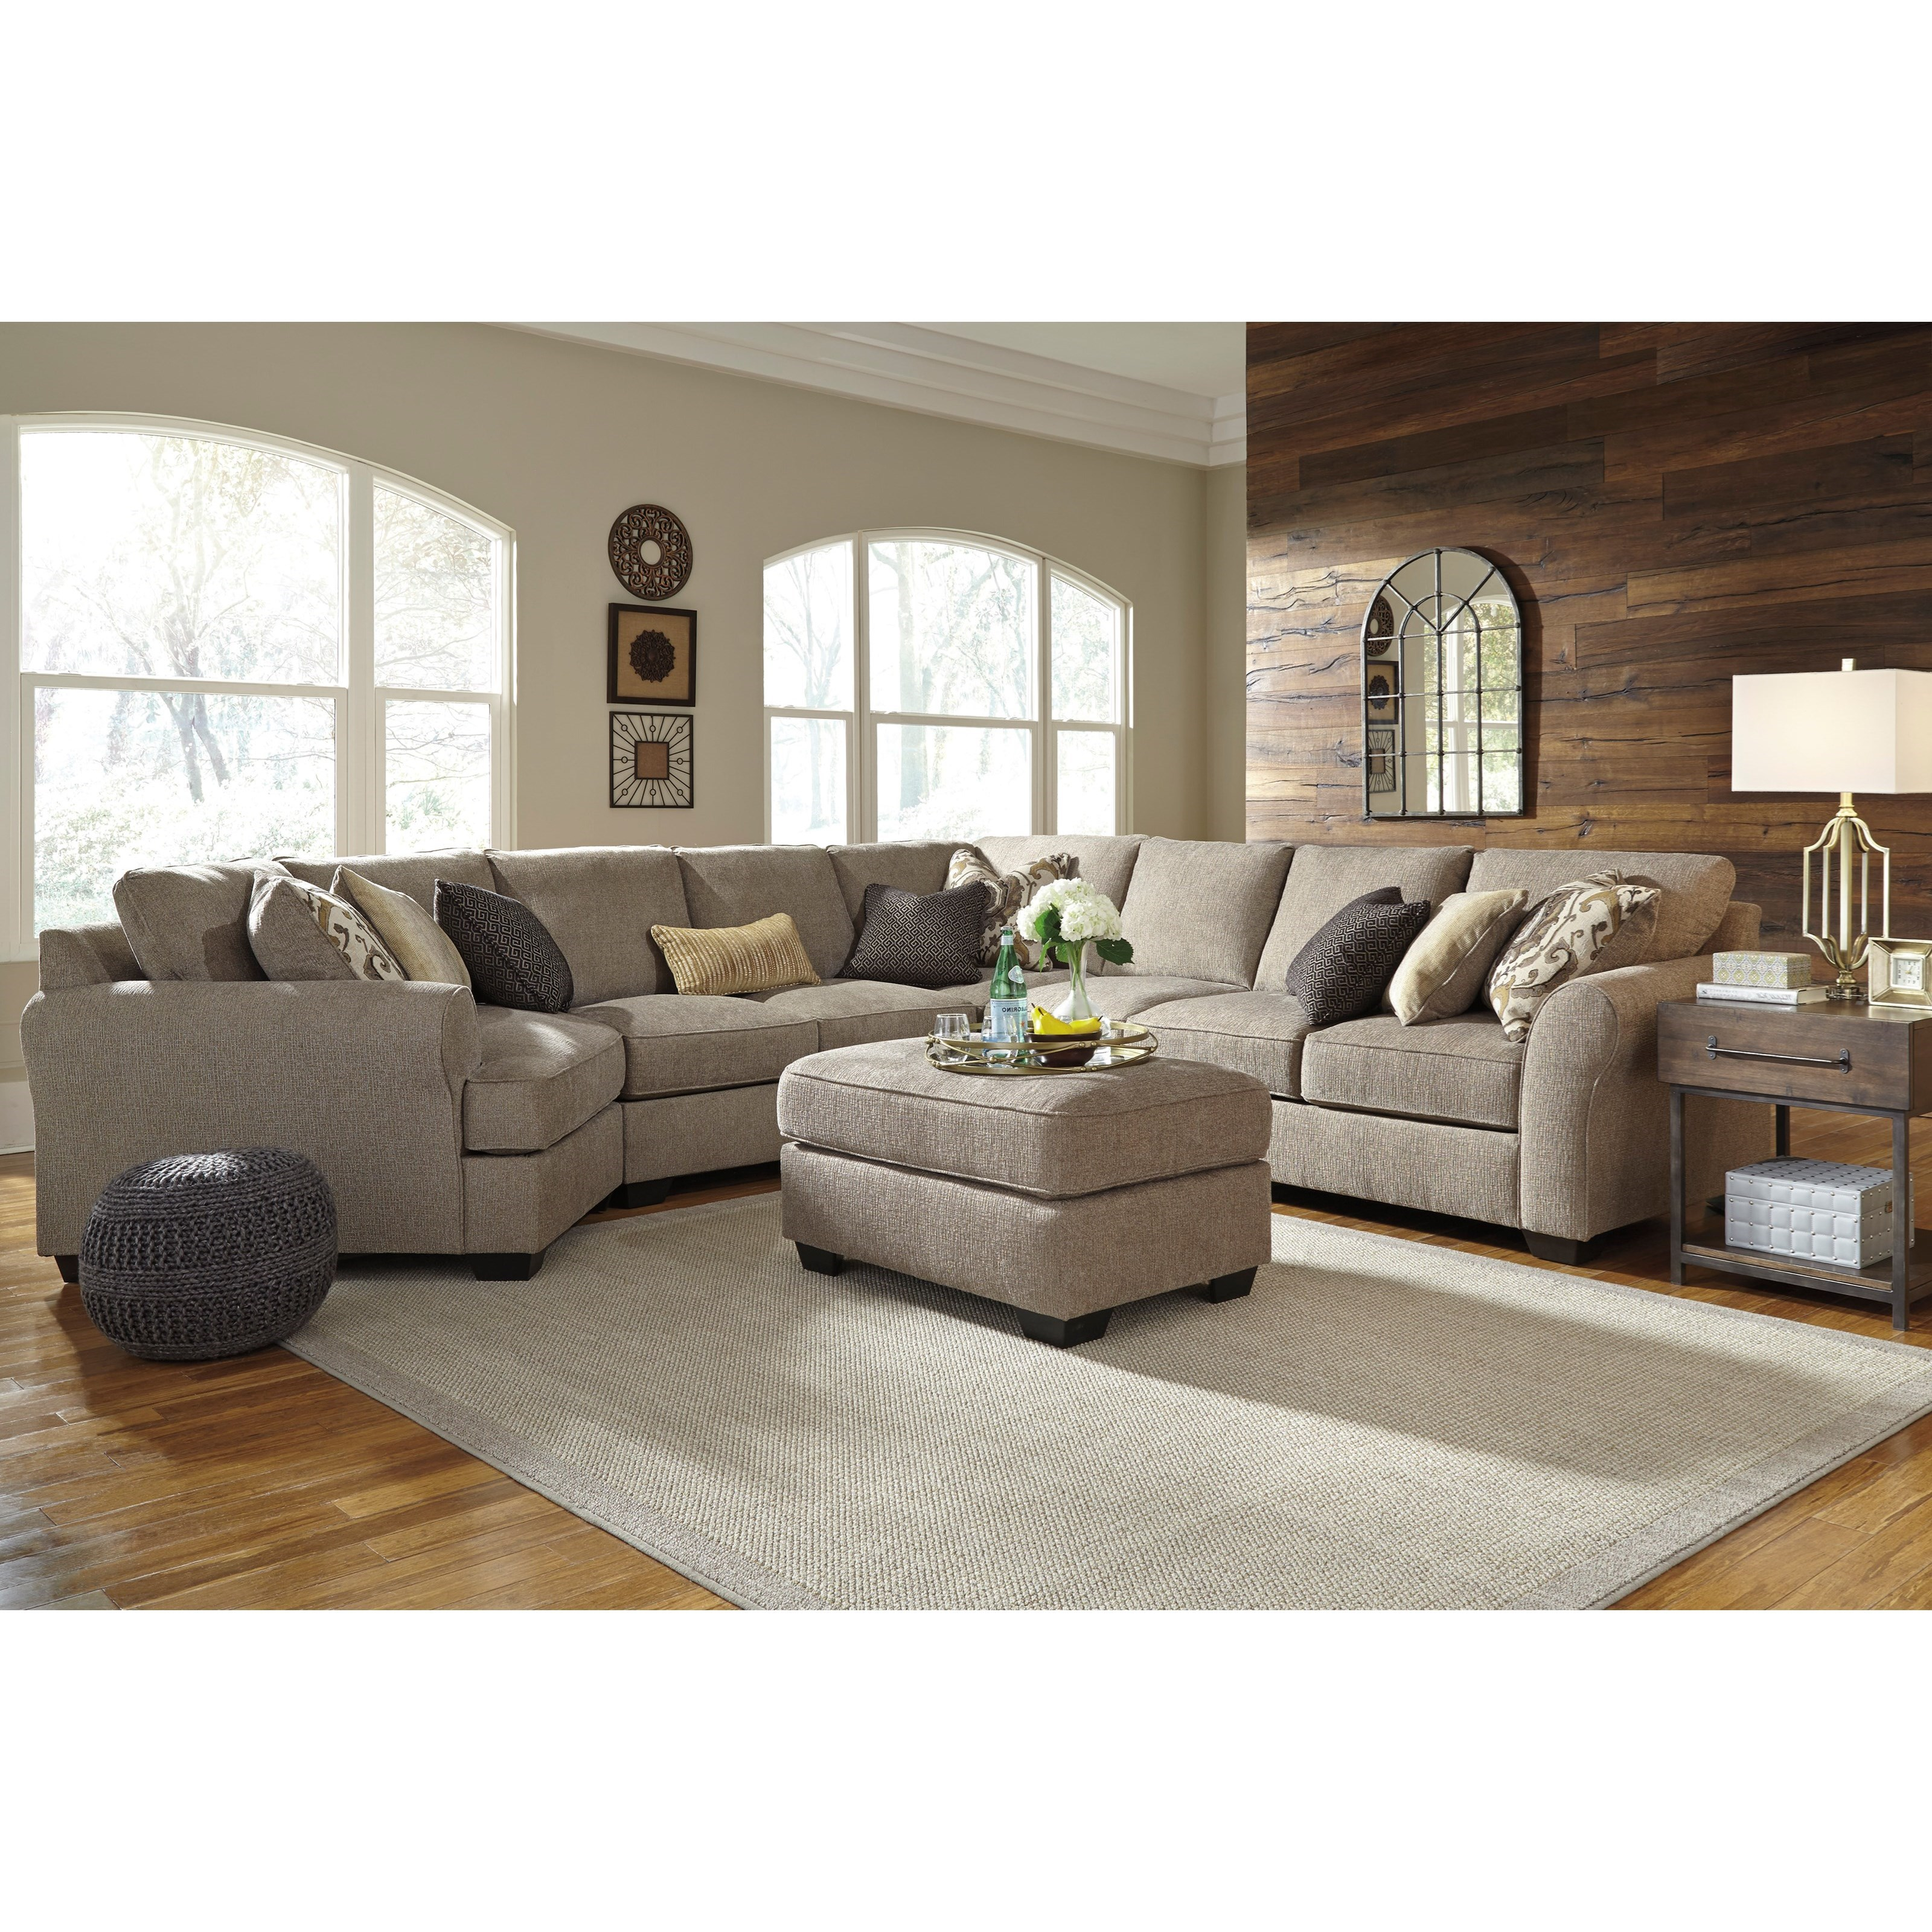 Pantomine 5-Piece Sectional with Ottoman by Benchcraft at Walker's Furniture